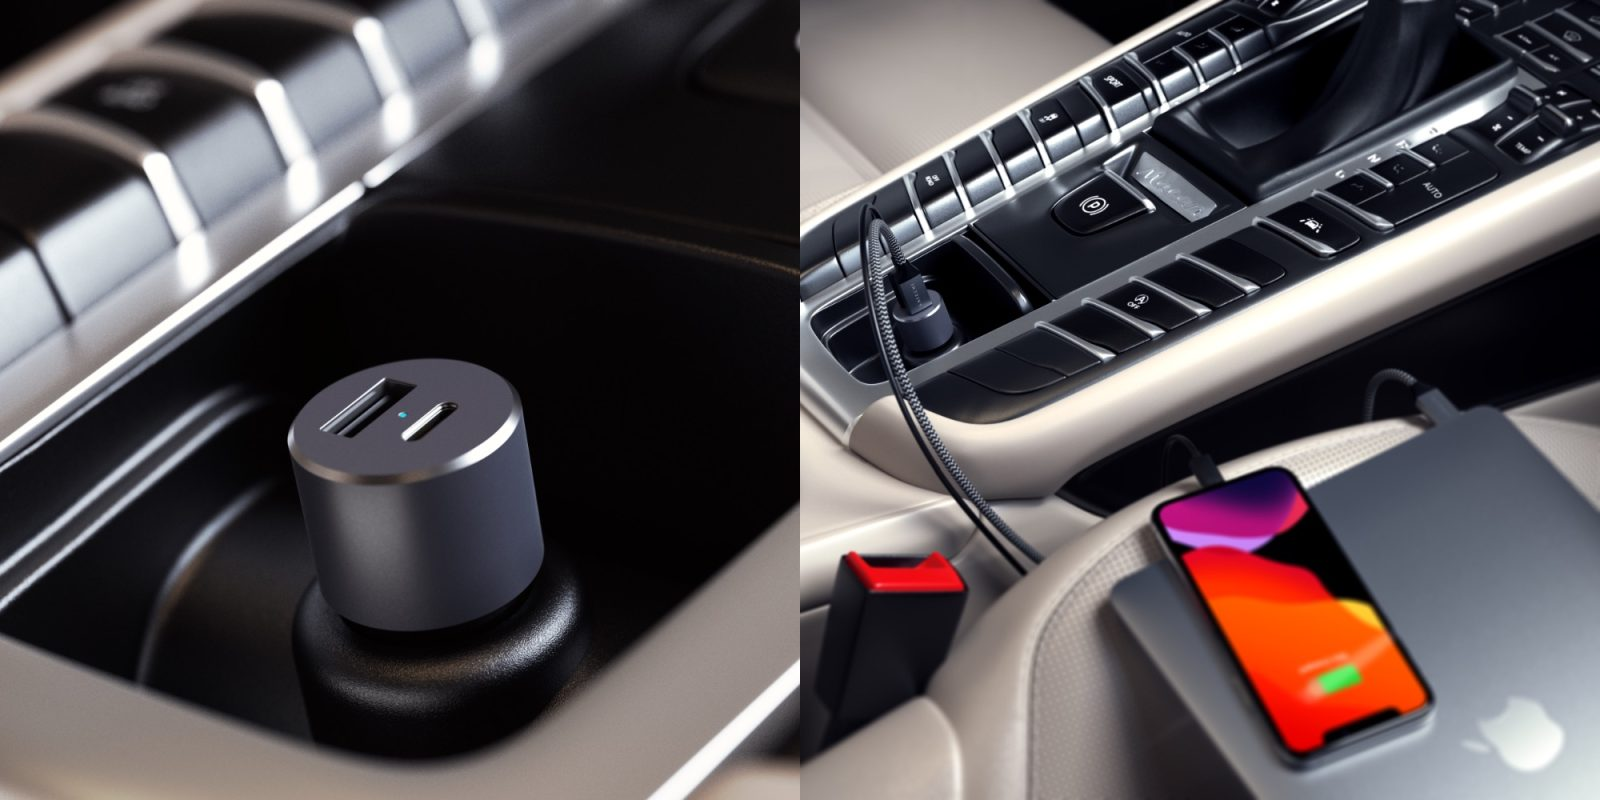 Satechi's 72W USB-C PD car charger can power up MacBooks and iPhones on the road